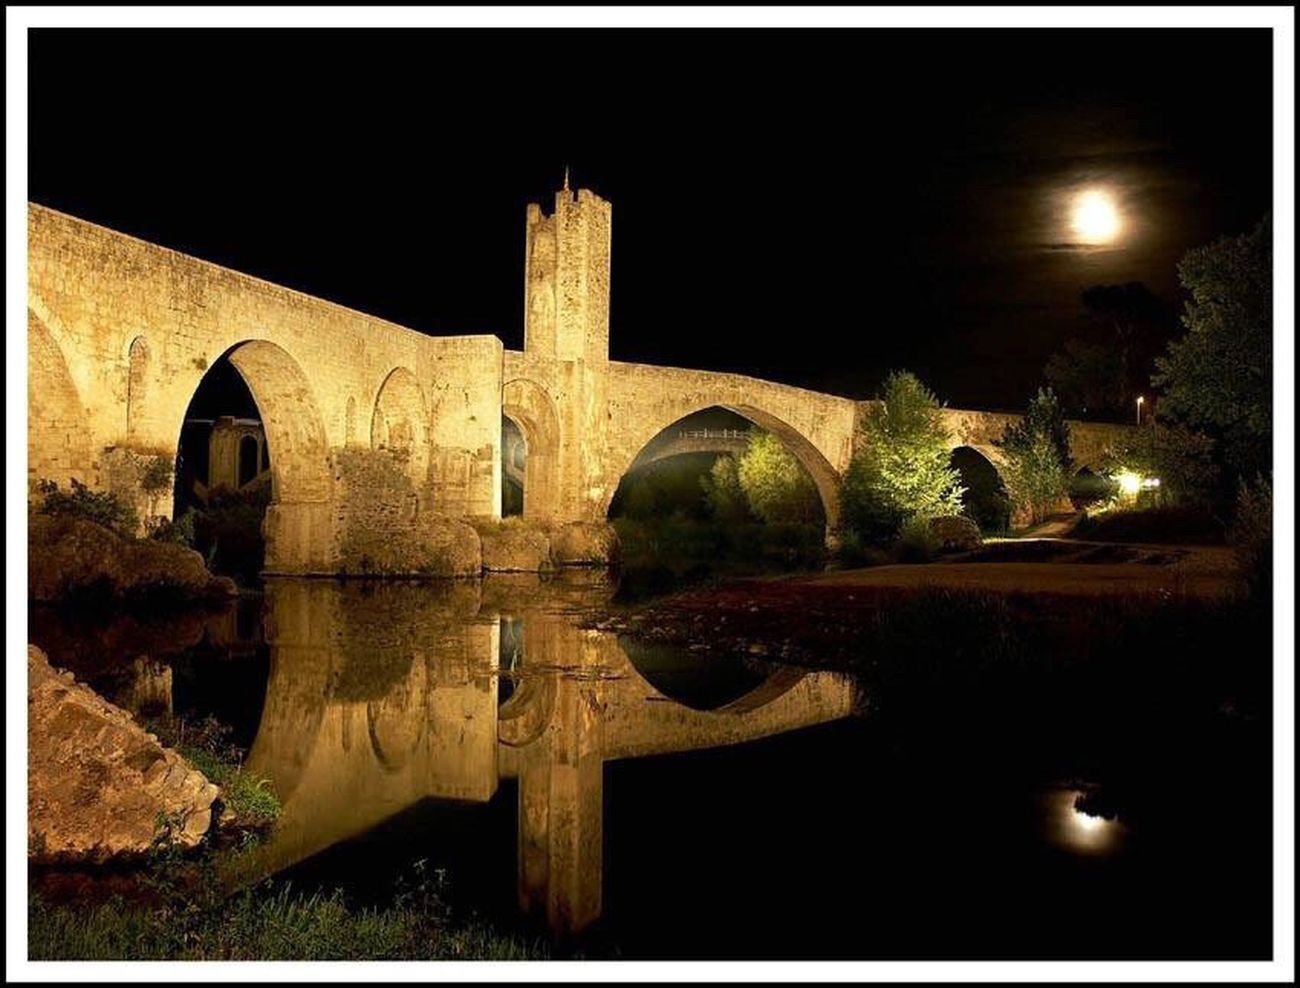 Architecture Built Structure History No People Illuminated Outdoors Night Tree Sky Medieval Bridge Romanesque Catalunya Catalonia Garrotxa Besalú